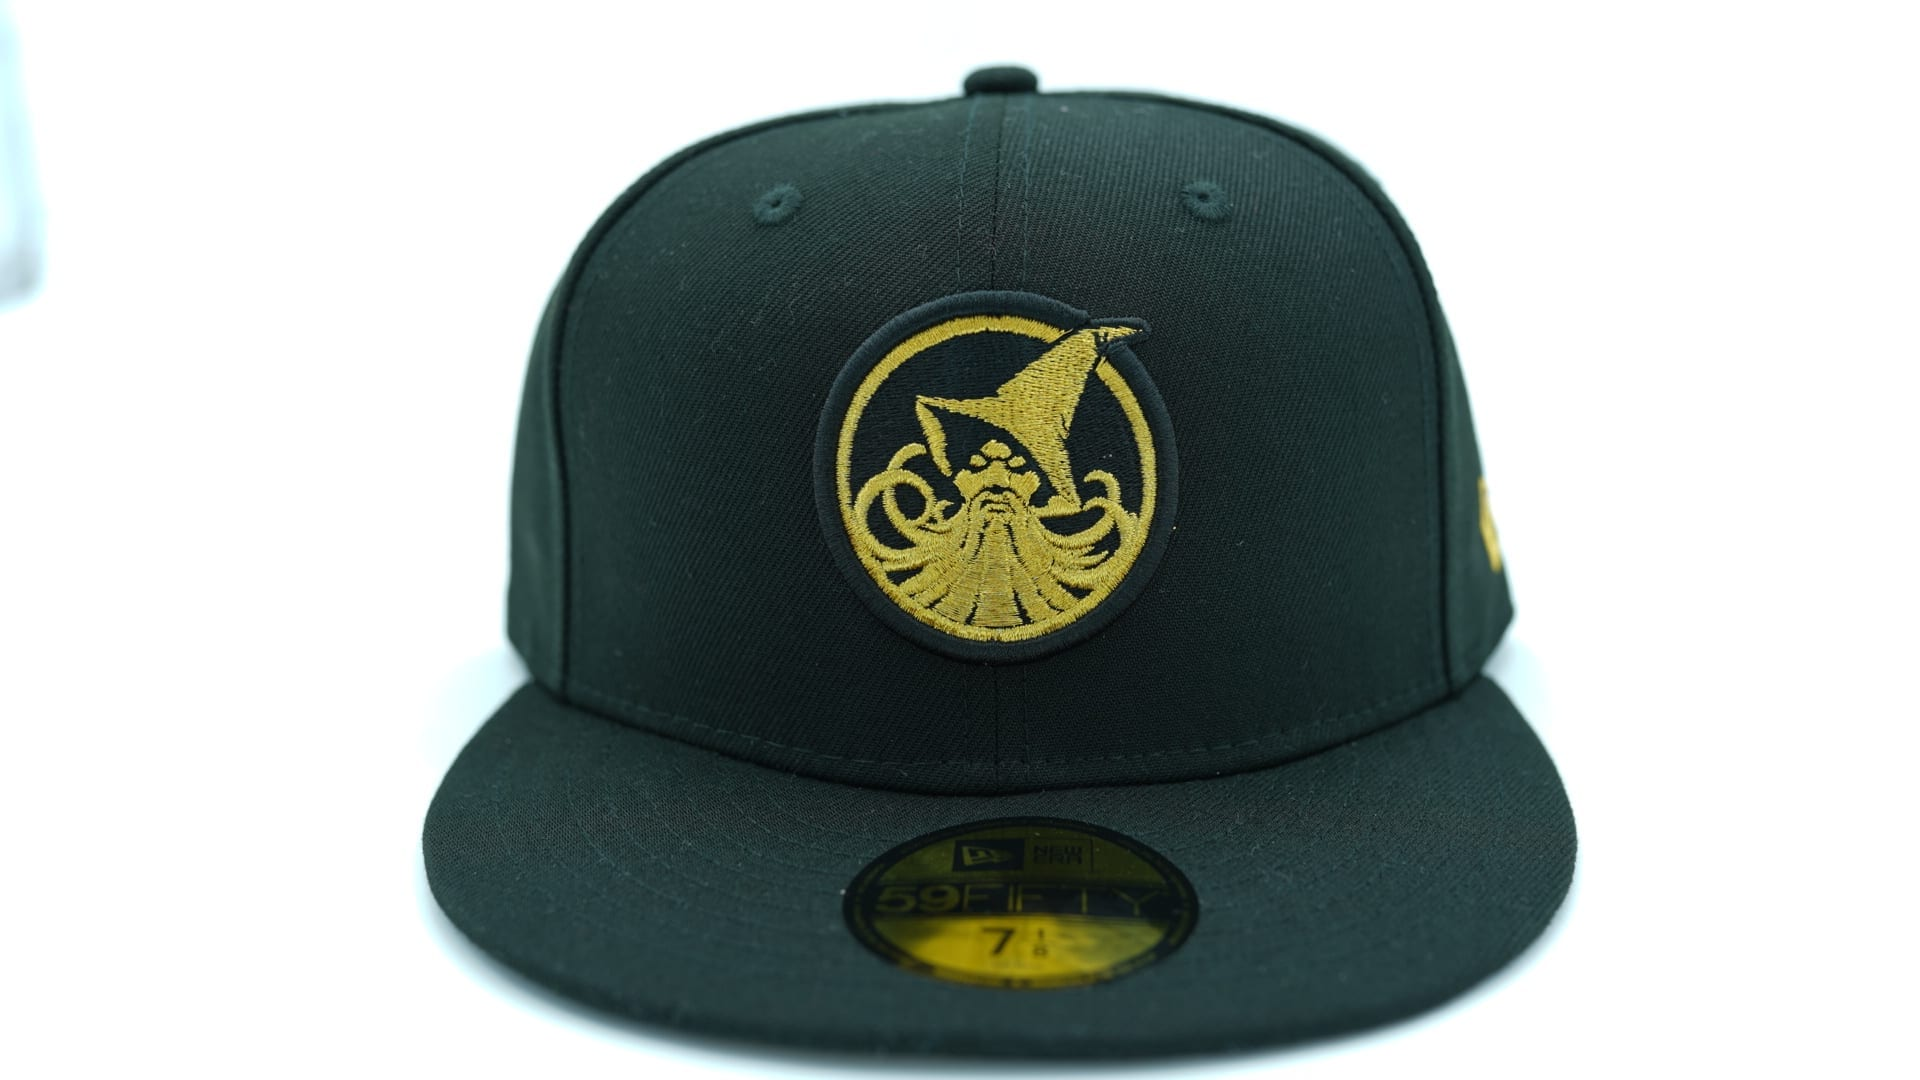 reputable site 223e5 c96d9 Golden State Warriors GSW 73-9 Collection 59Fifty Fitted Cap